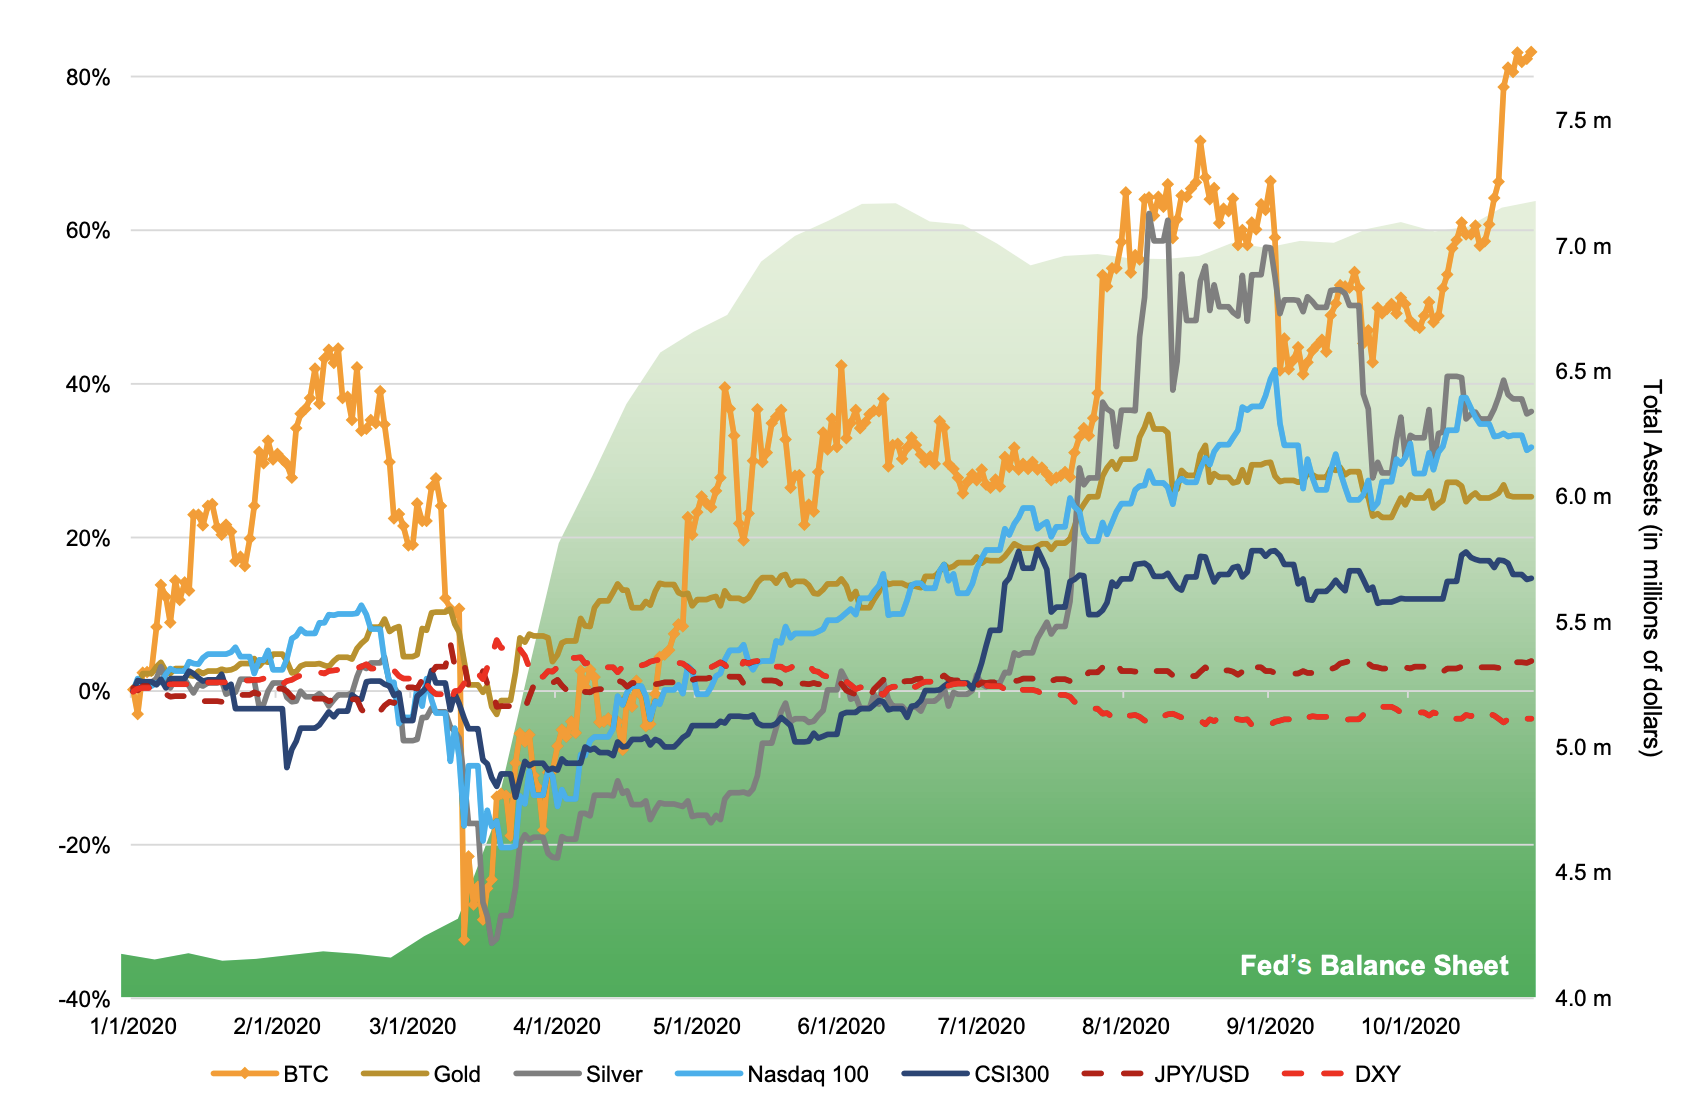 Bitcoin Performance versus Traditional Assets & Indices